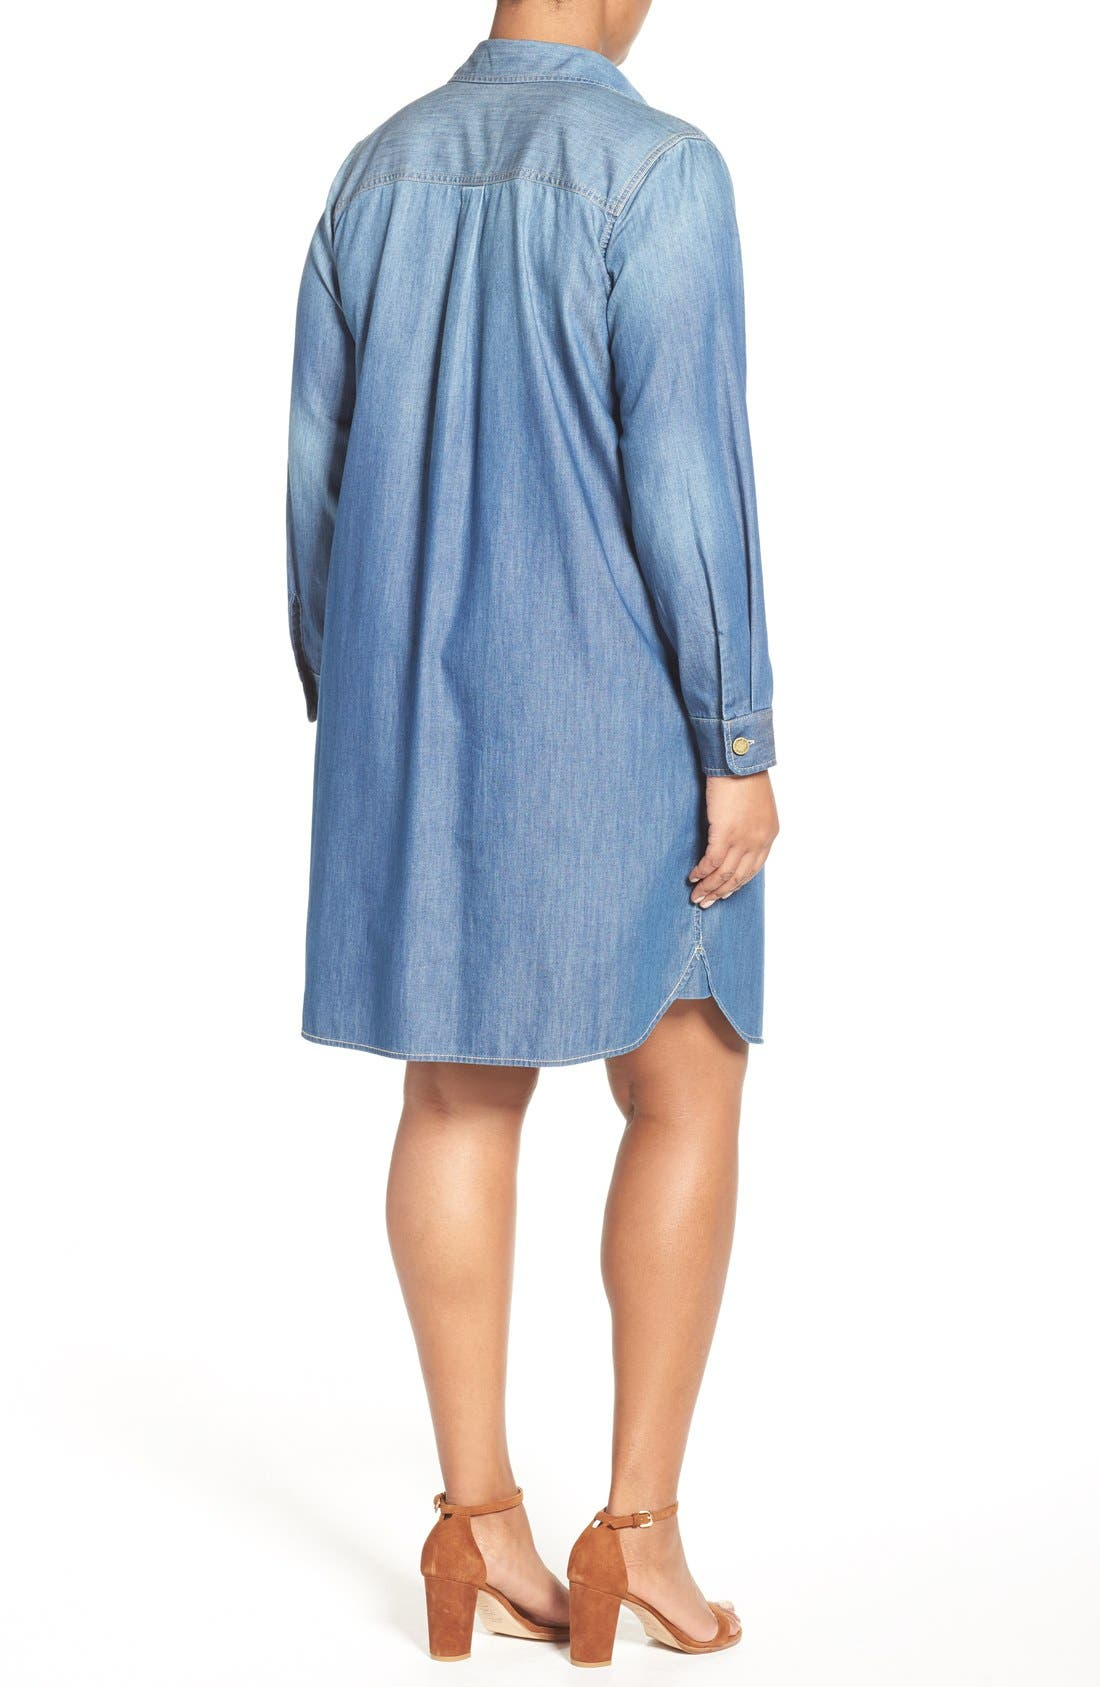 Alternate Image 2  - Two by Vince Camuto Denim Shirtdress (Plus Size)